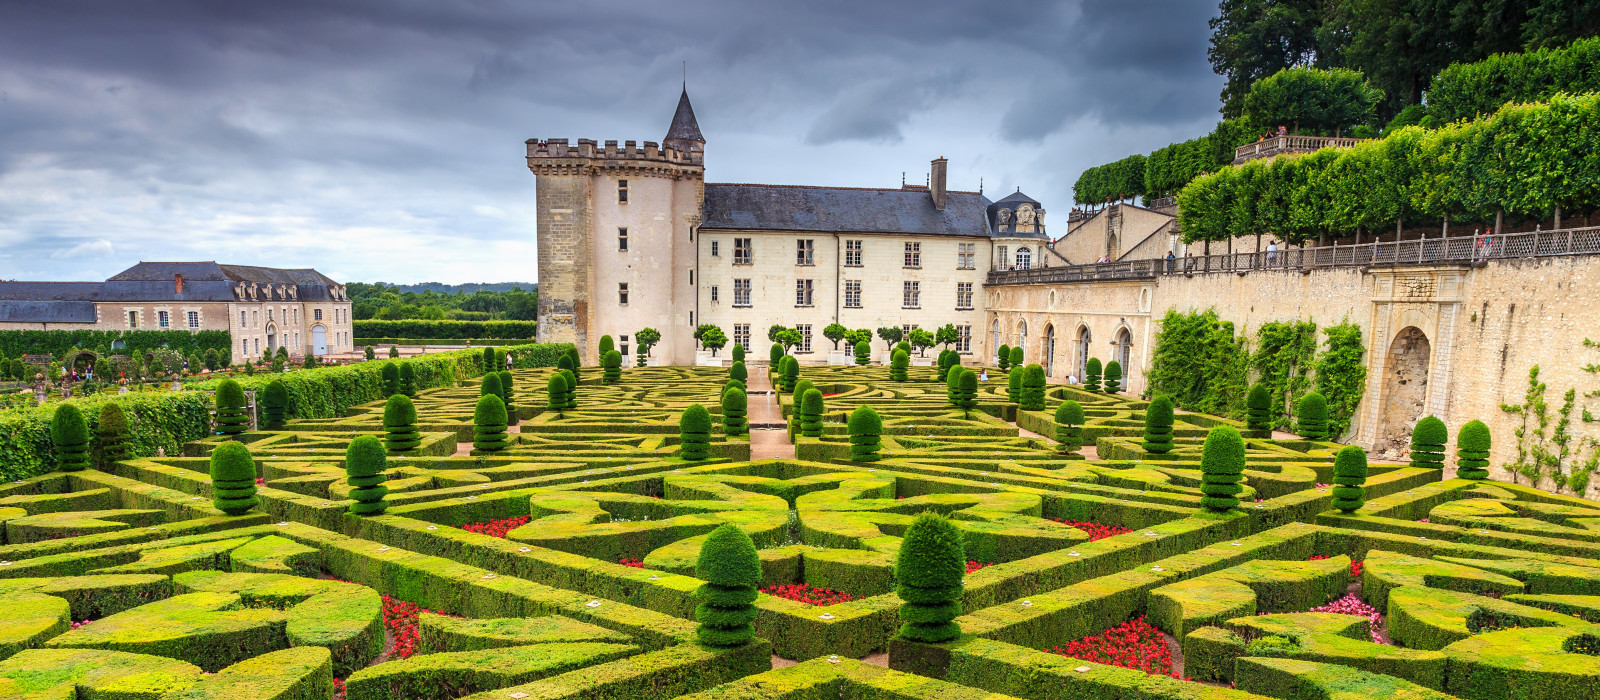 History of France - chateaux